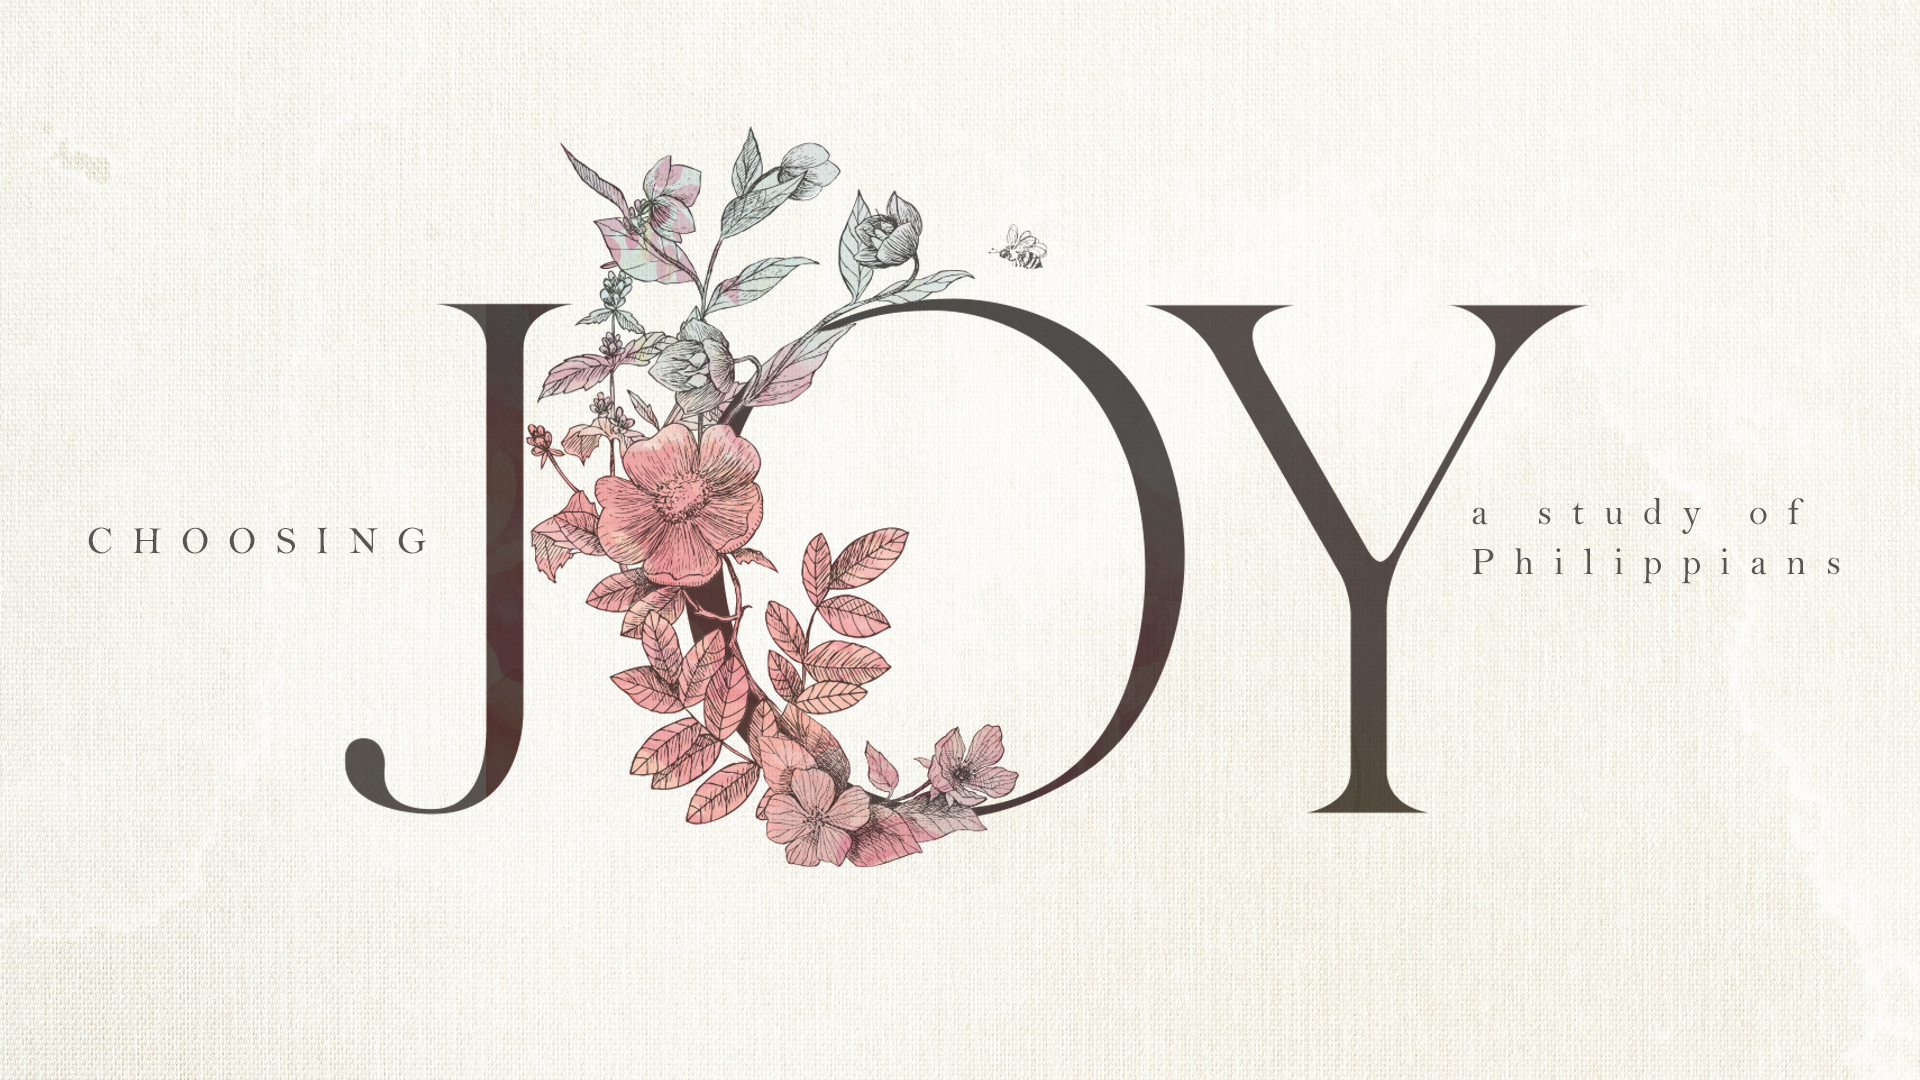 Joy Through Servanthood